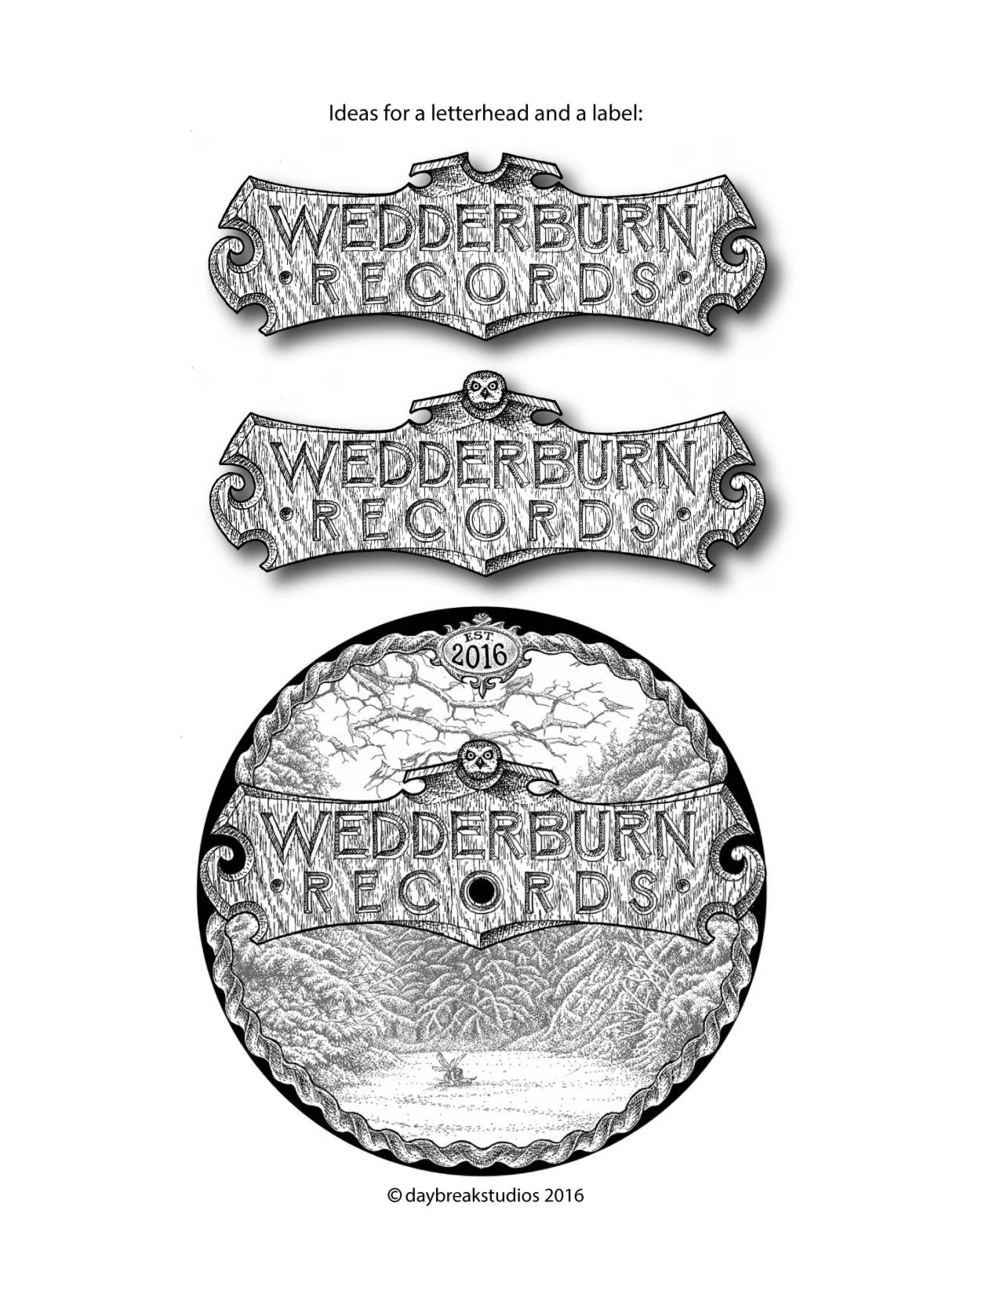 WedderburnRecords.jpg